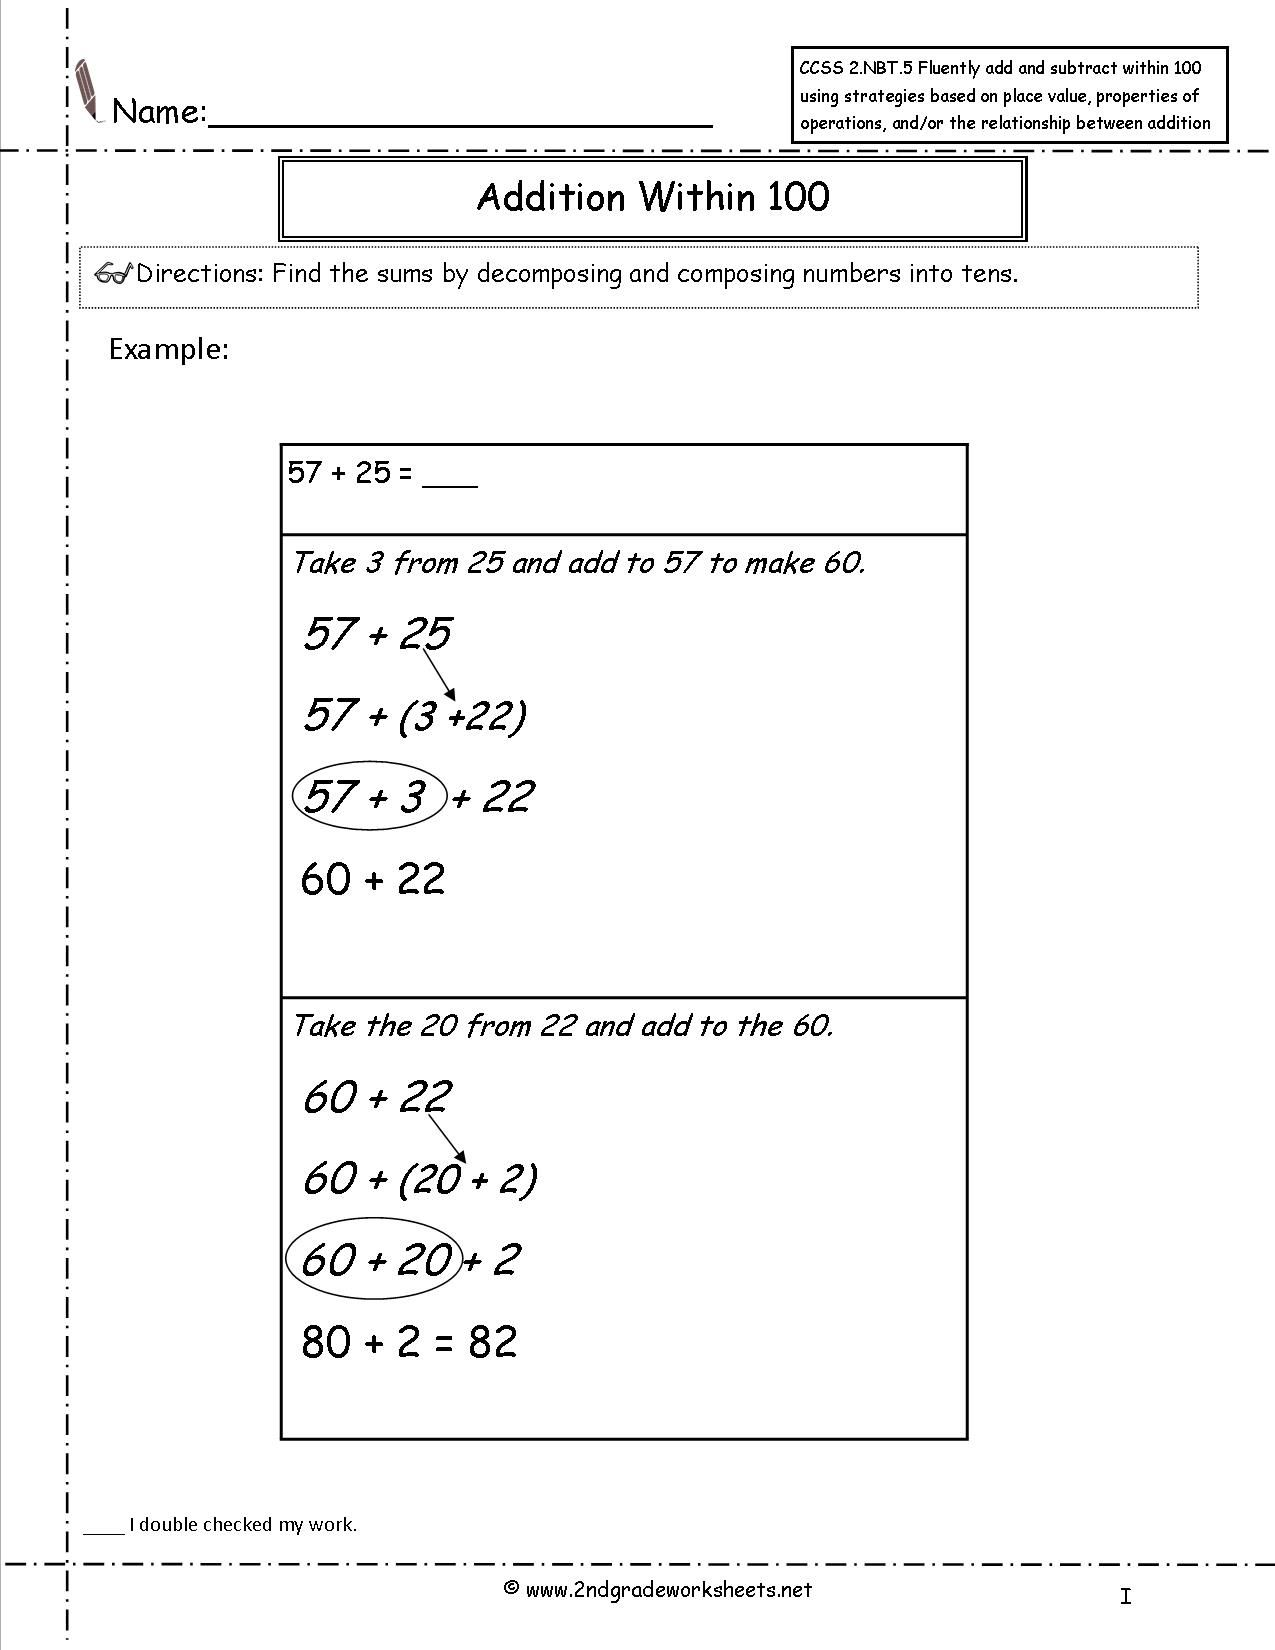 28 Simple Common Core Worksheets Design Ideas With Images